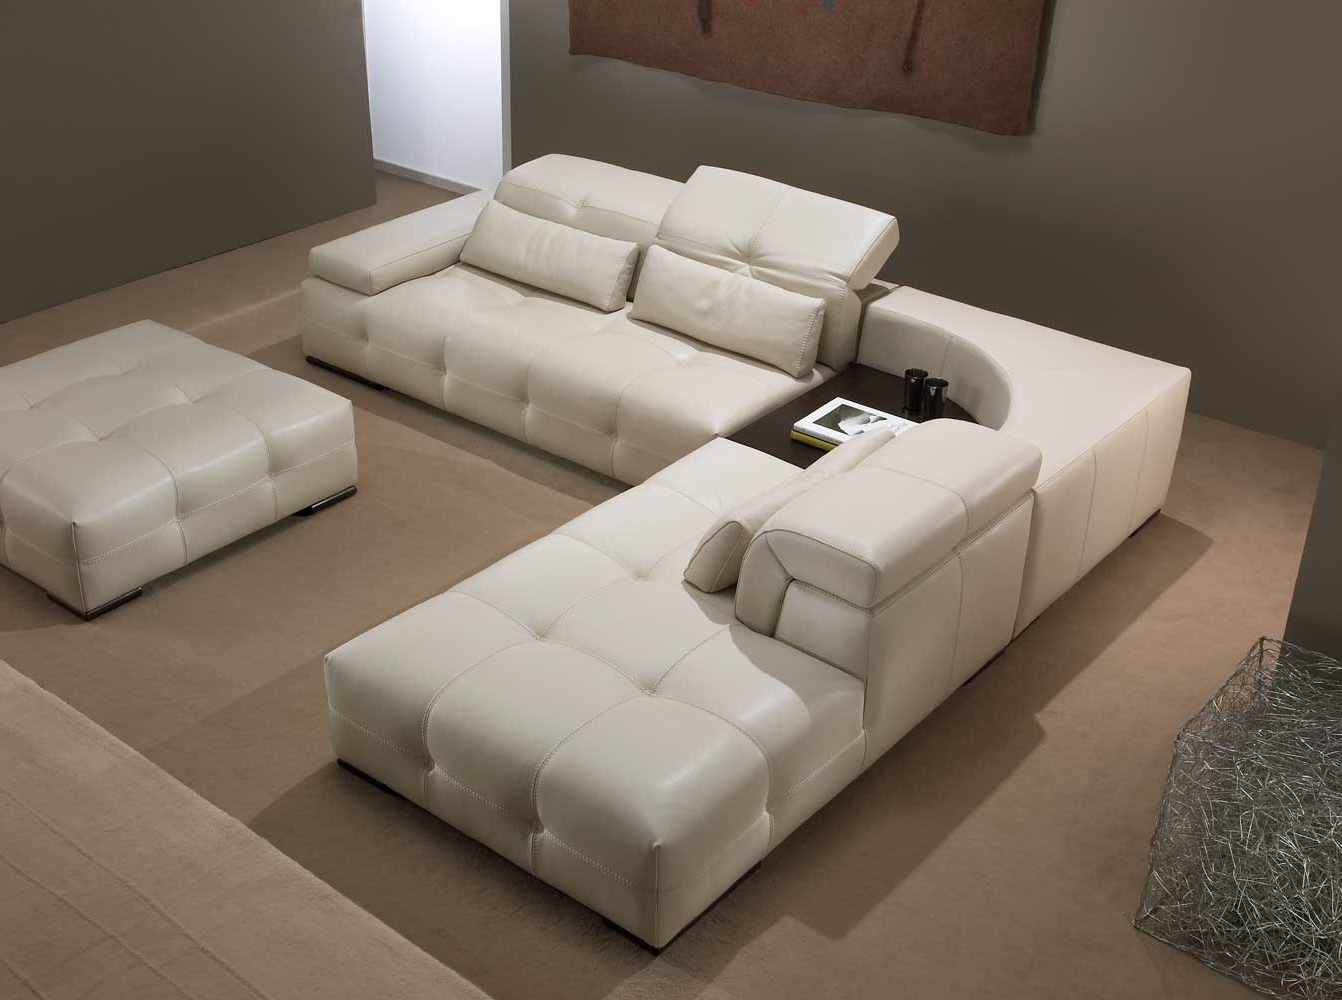 Gamma Paramount – Bif Usa Inside Preferred Queens Ny Sectional Sofas (Gallery 15 of 20)